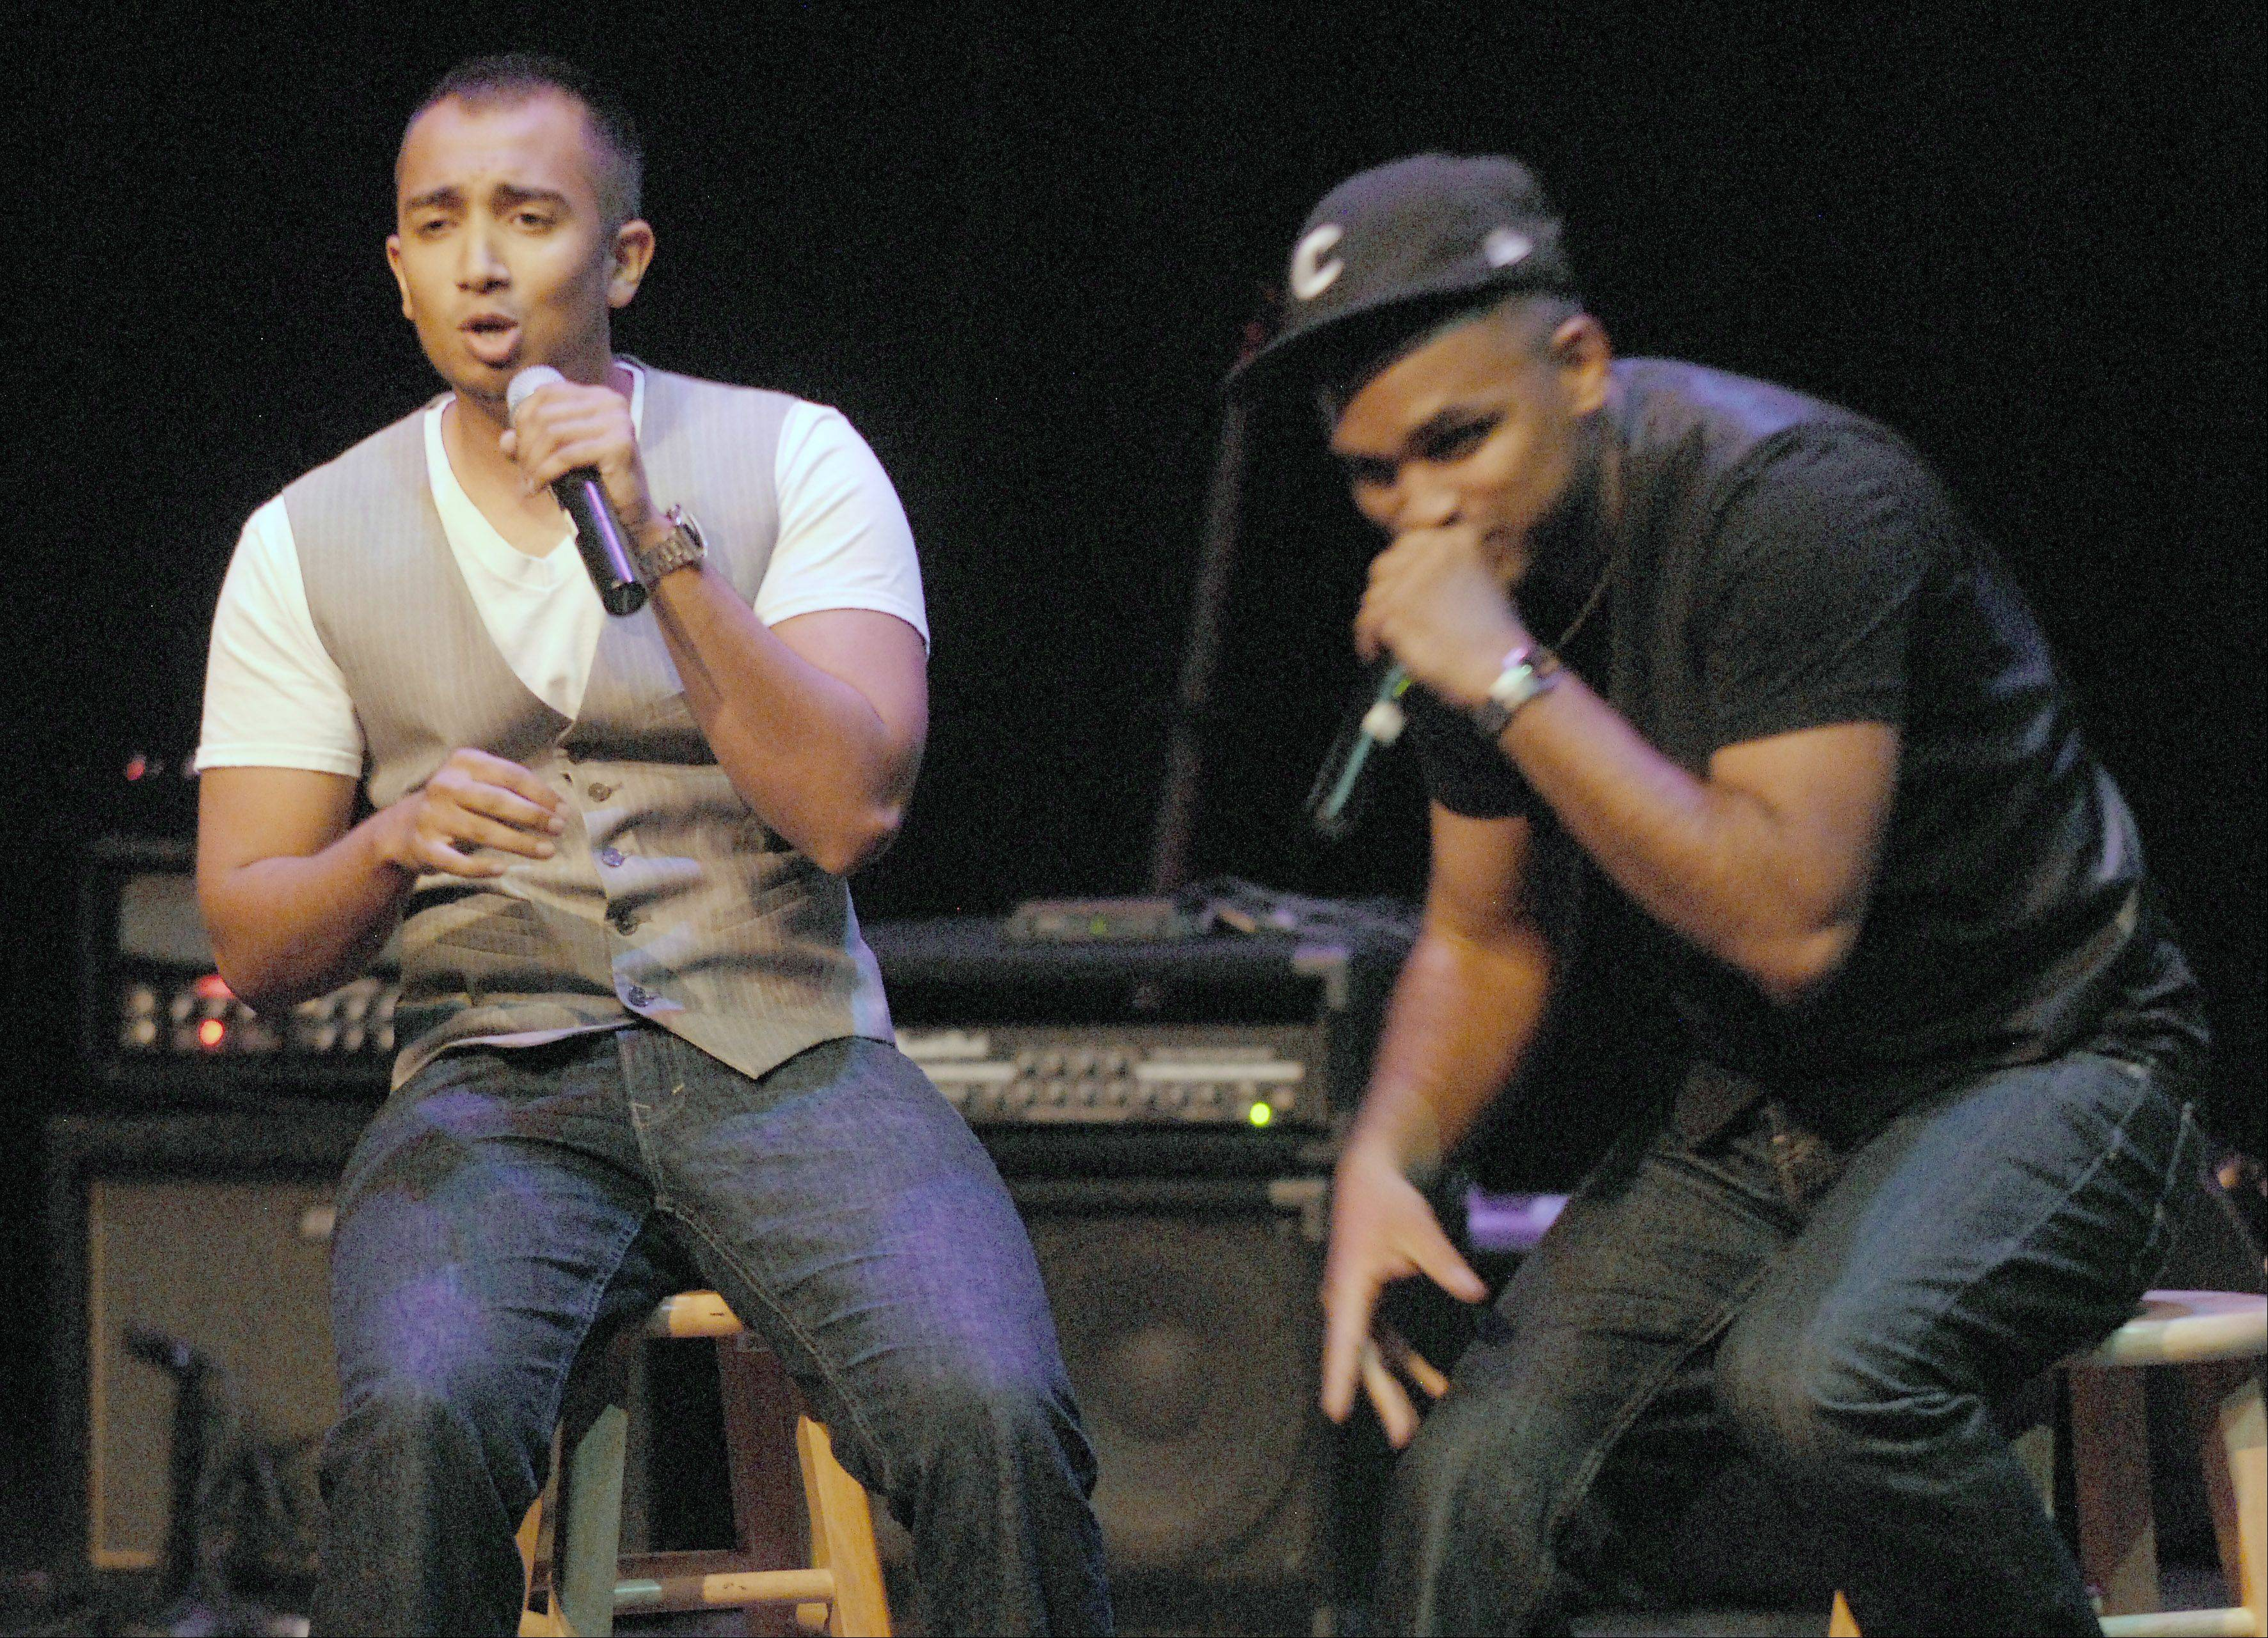 ILLest Vocals featuring Sanu John, 25, of Skokie and Shawn Kurian, 25, of Wheeling were named the winners and the Fan Favorite Saturday for Suburban Chicago's Got Talent.